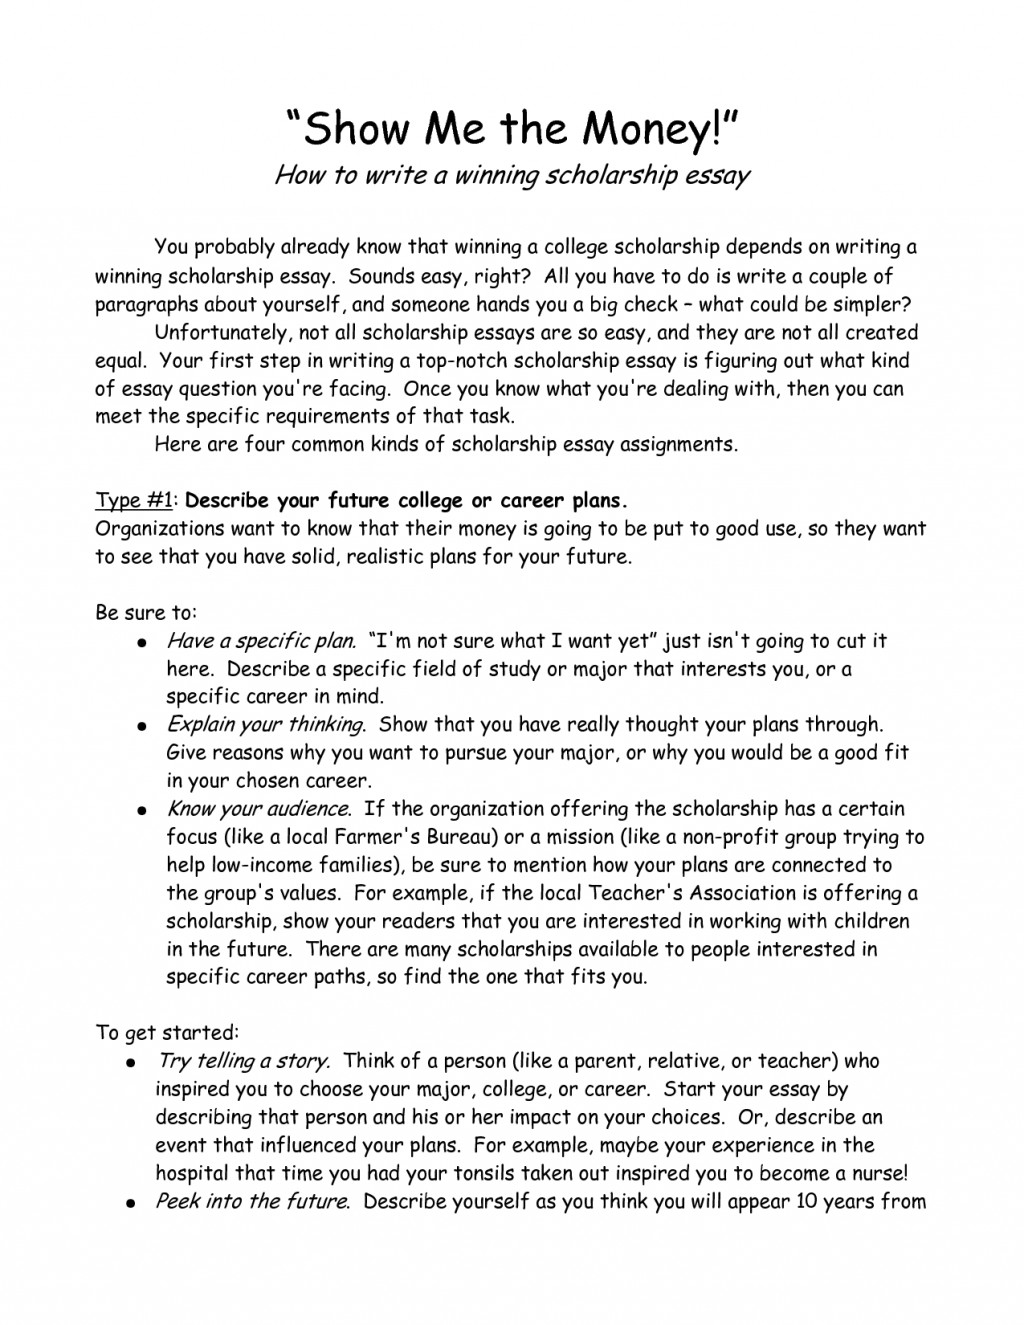 002 Scholarship Essay Sample Example Stunning Samples For College Students Pdf About Why I Deserve The Large